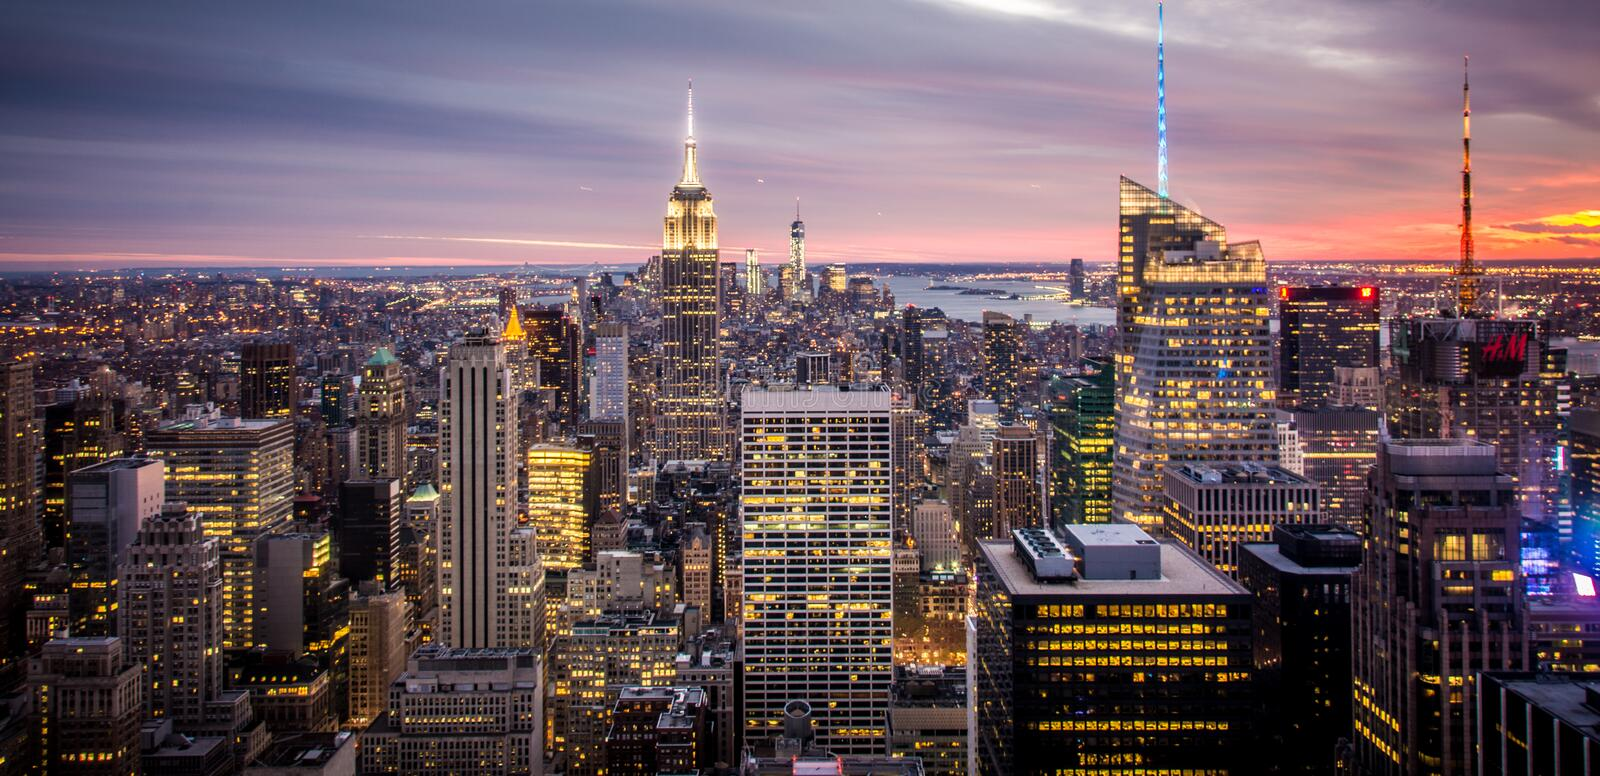 Empire State Building, New York Manhattan durante il tramonto immagine stock